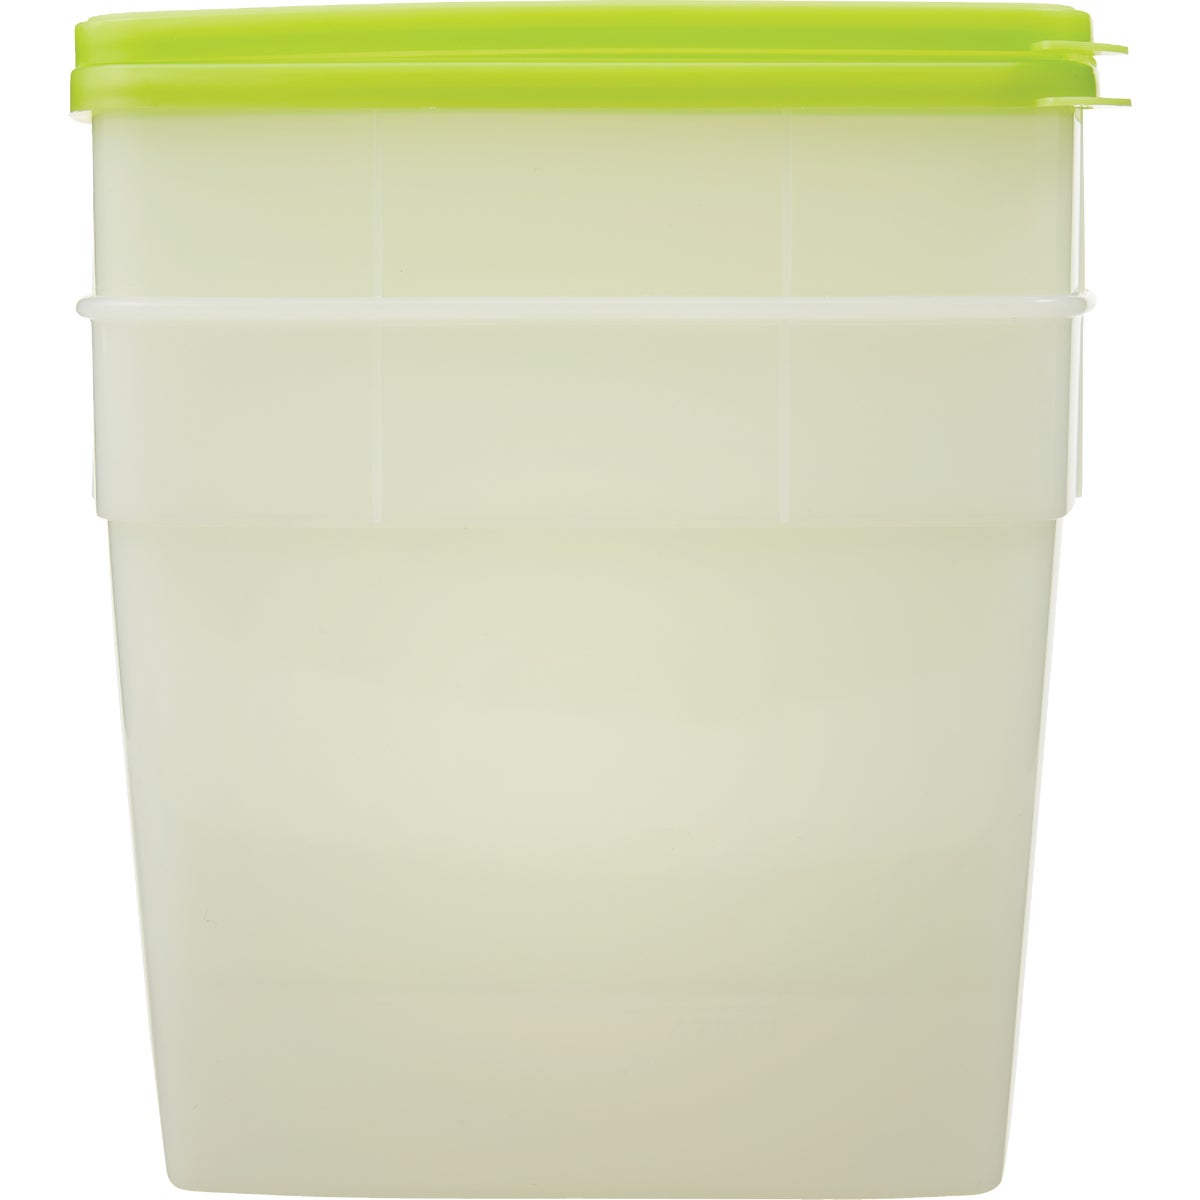 1/2GAL STORAGE CONTAINER - 00045 by Arrow Plastic Mfg Co